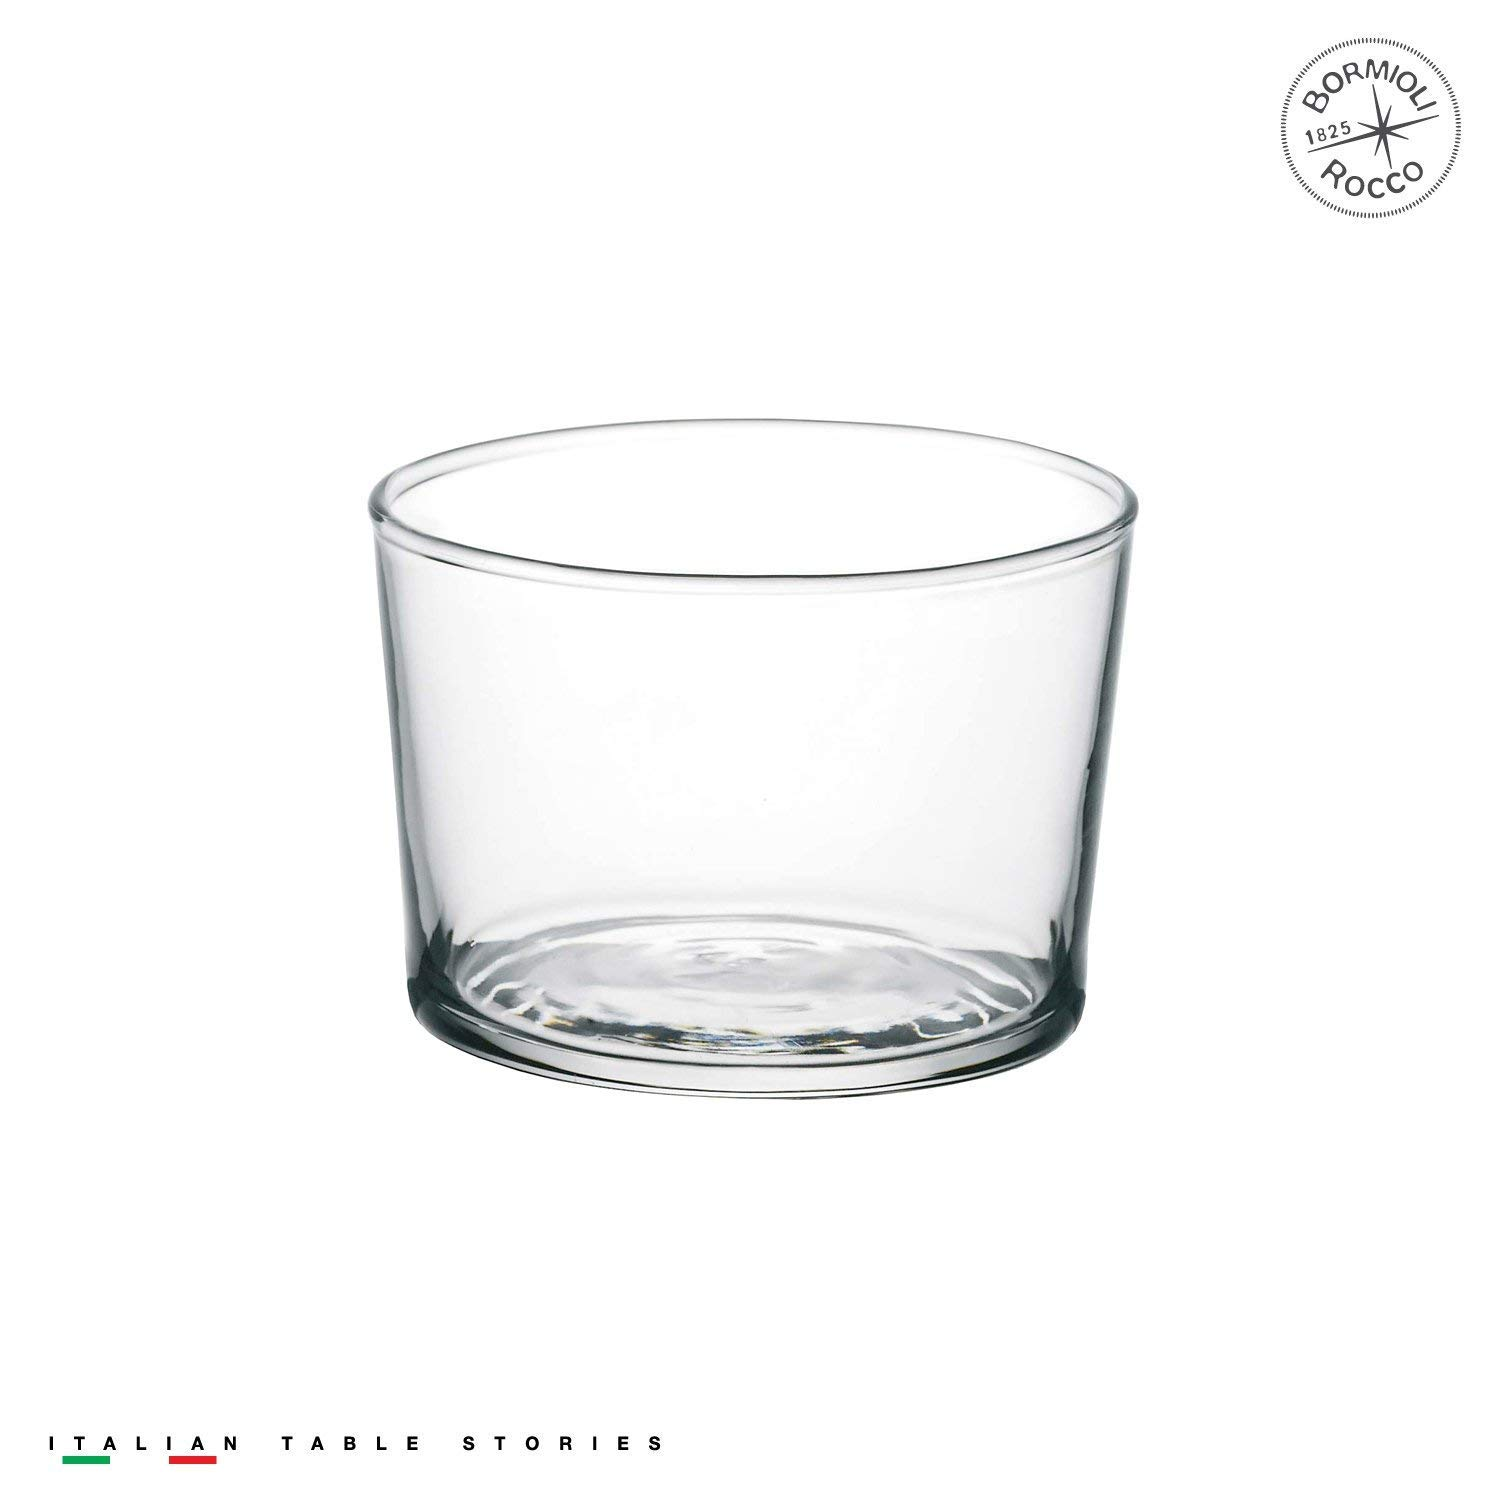 Mini tumblers - Come explore Serene Decor Slow Living as well as Small Thoughtful Changes at Home.